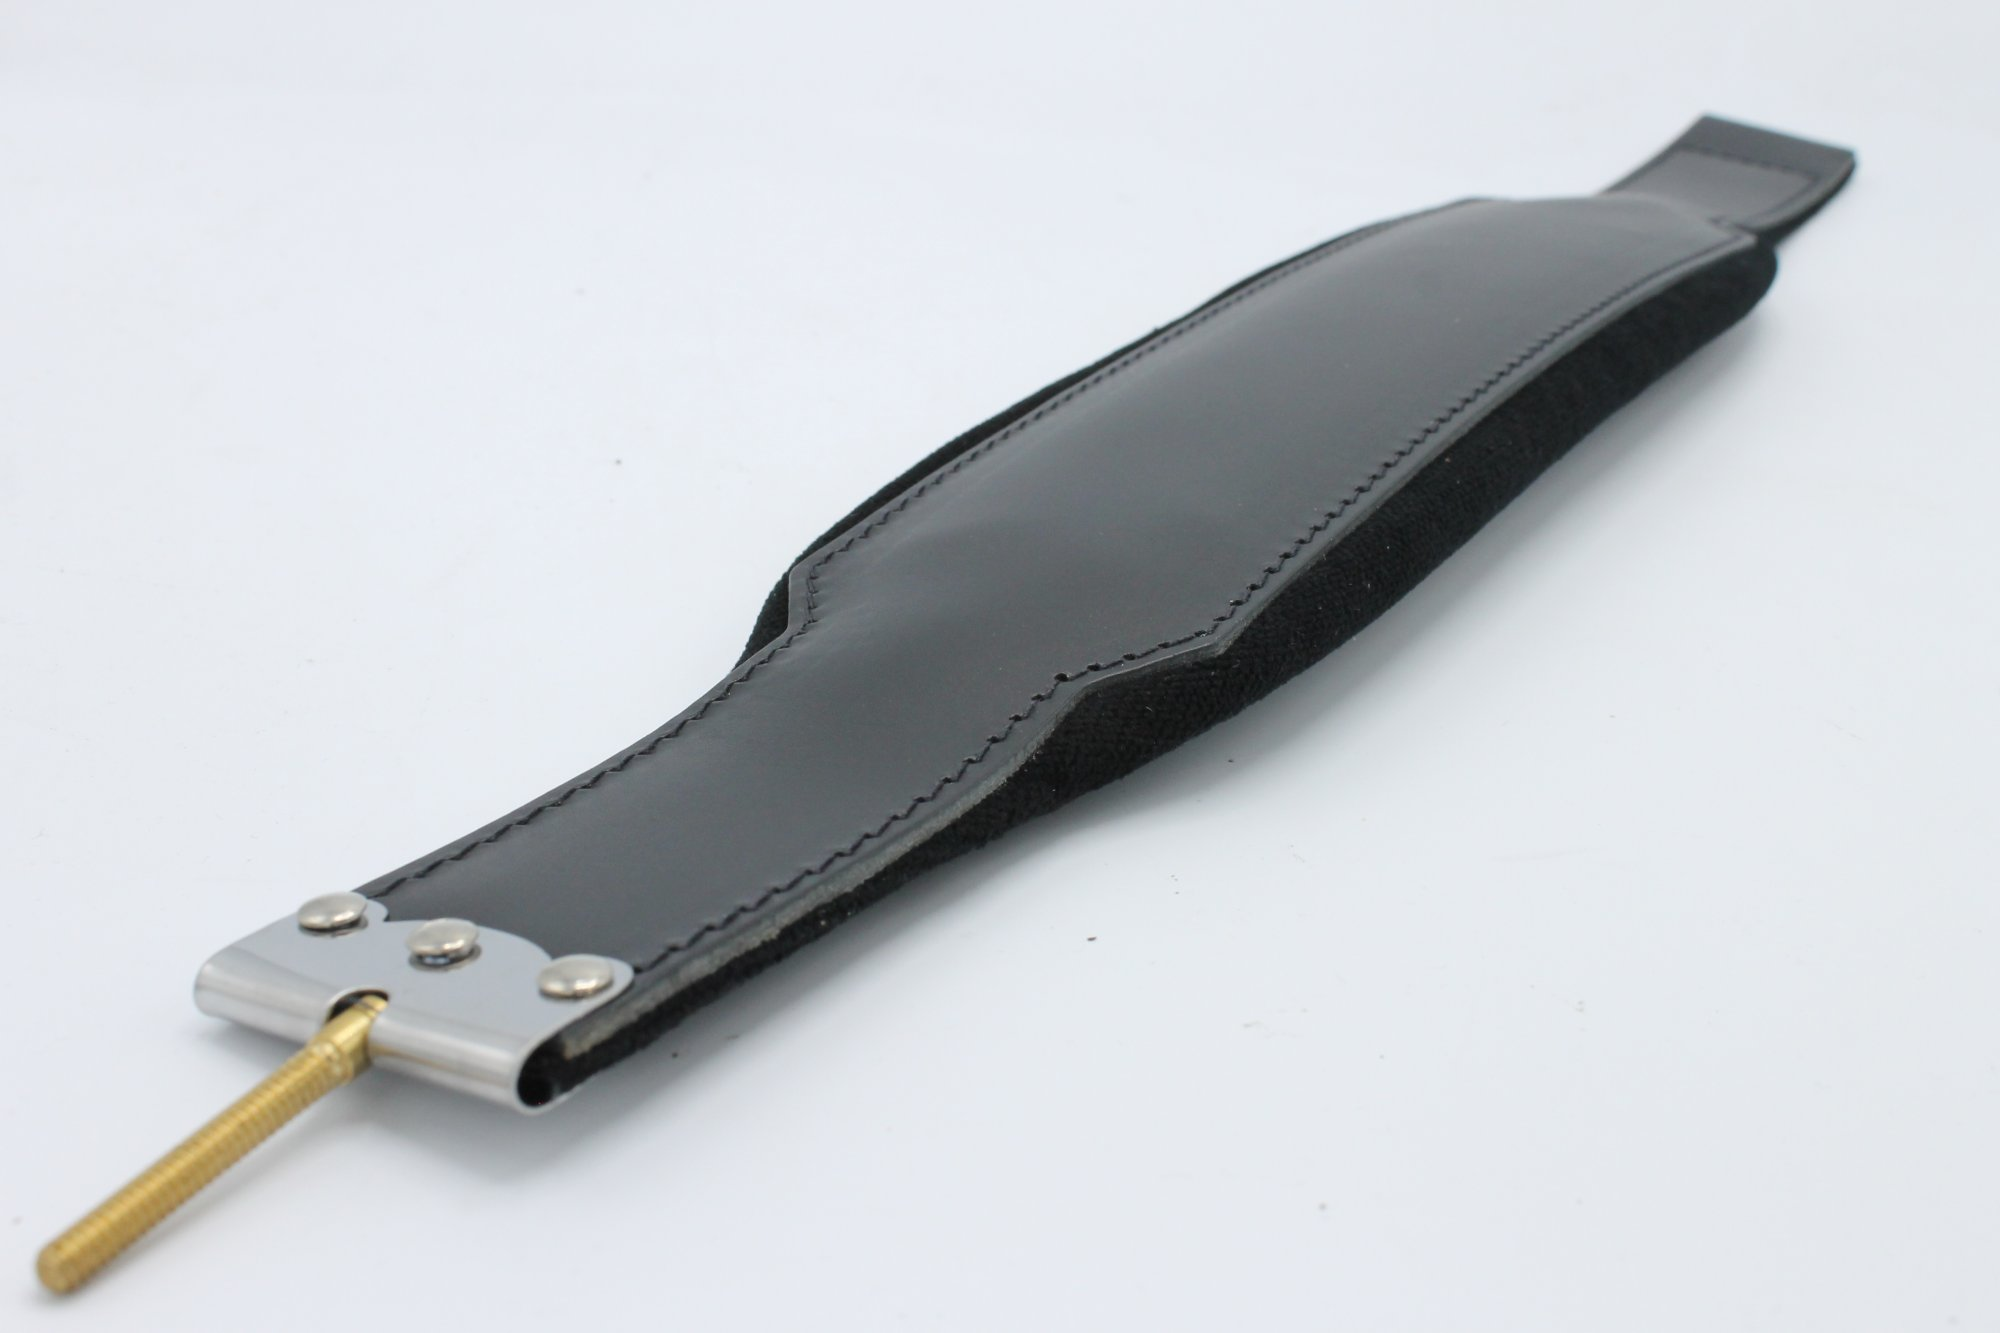 New Black Leather Velour Fuselli Accordion Bass Hand Strap Width (3.5in/9cm) Length (19.75in/50cm)